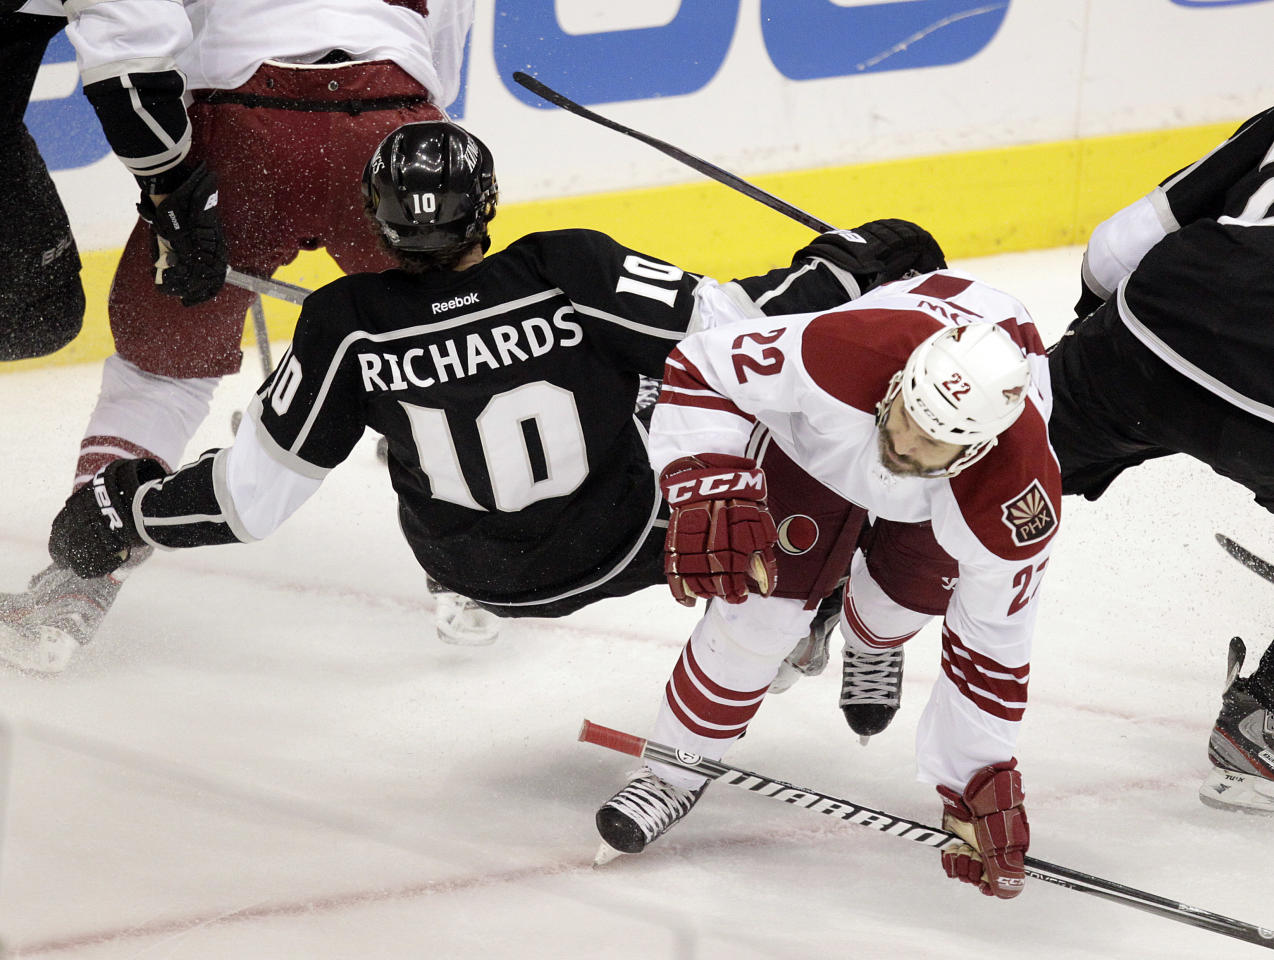 Los Angeles Kings center Mike Richards, left, collides with Phoenix Coyotes center Daymond Langkow during the first period of Game 4 of the NHL hockey Stanley Cup Western Conference finals in Los Angeles, Sunday, May 20, 2012. (AP Photo/Jae C. Hong)